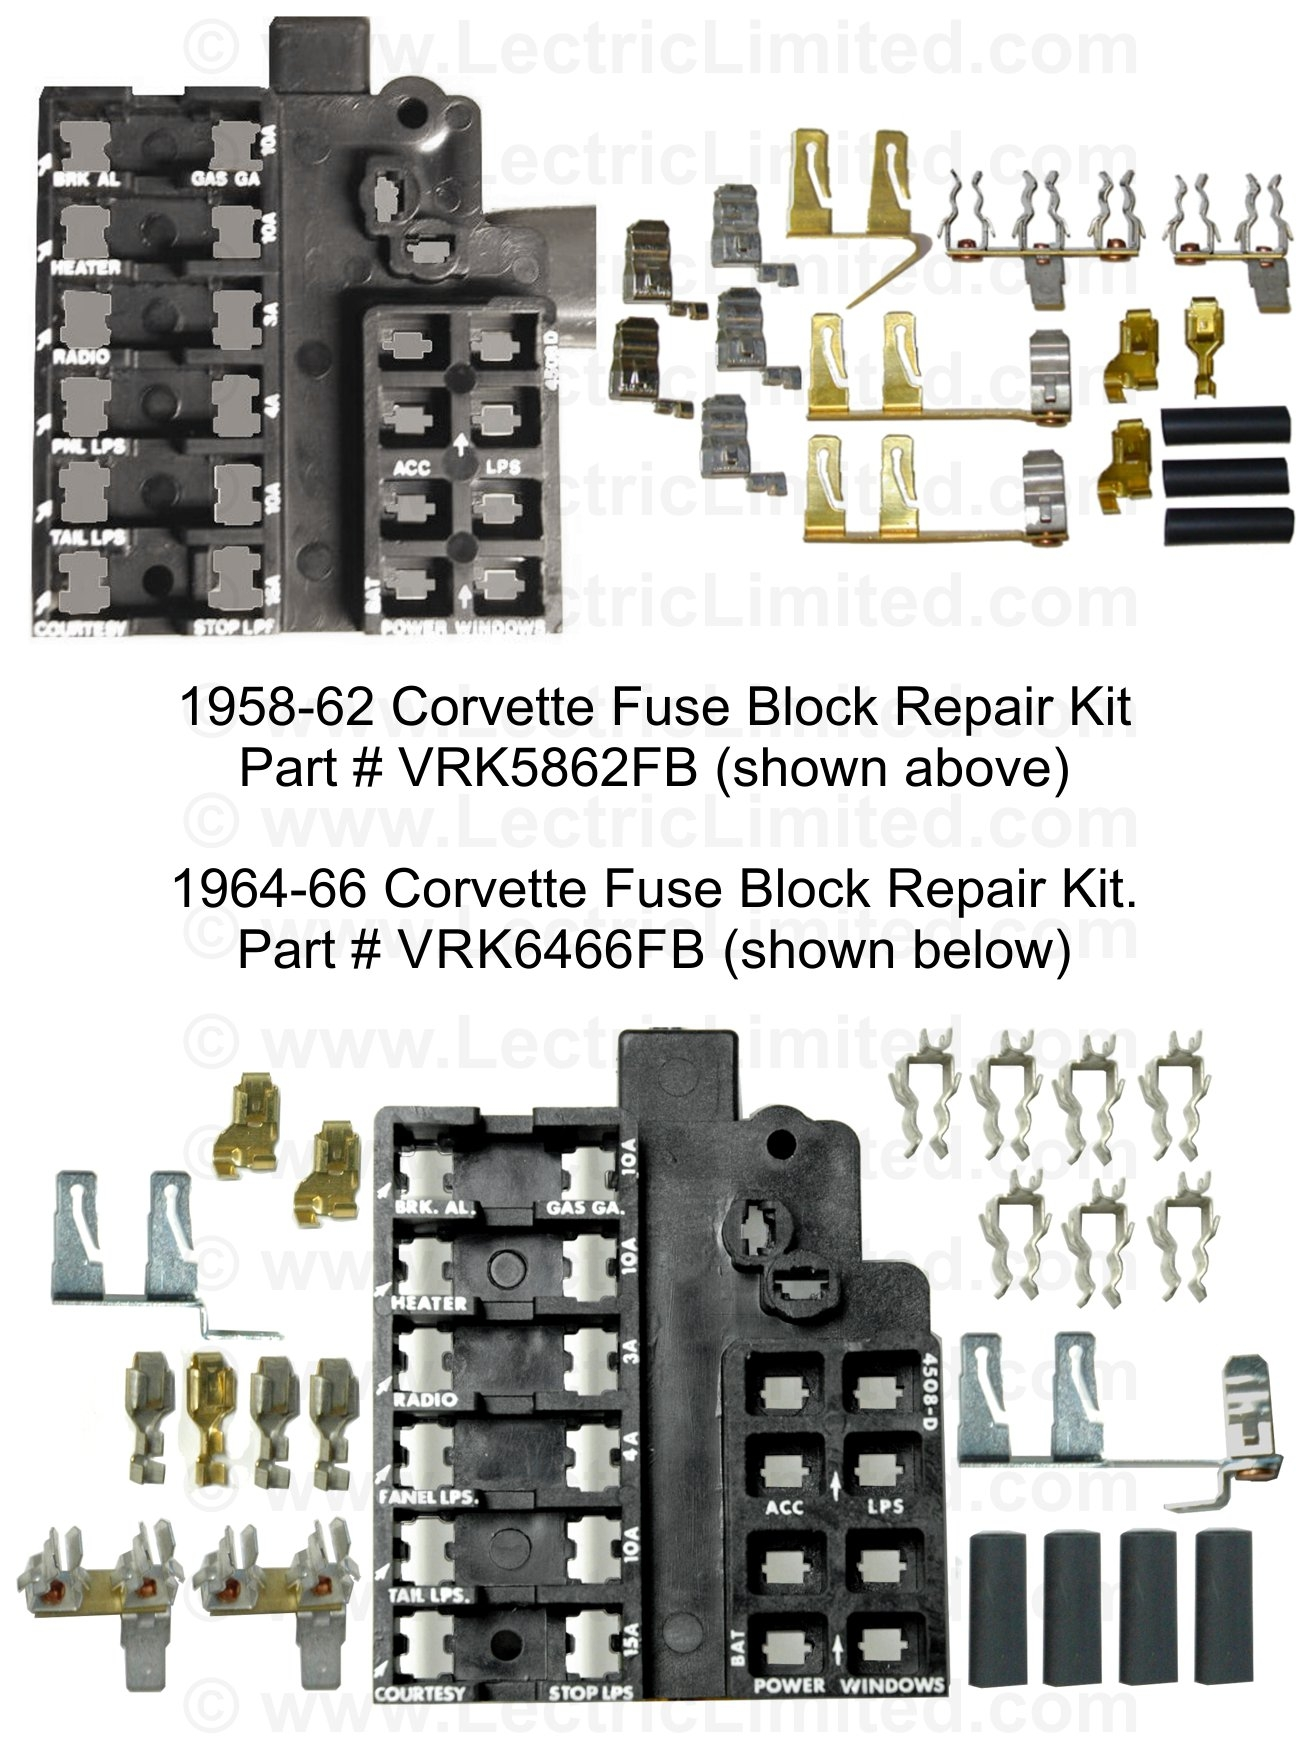 Components Of Fuse Box : Repair components